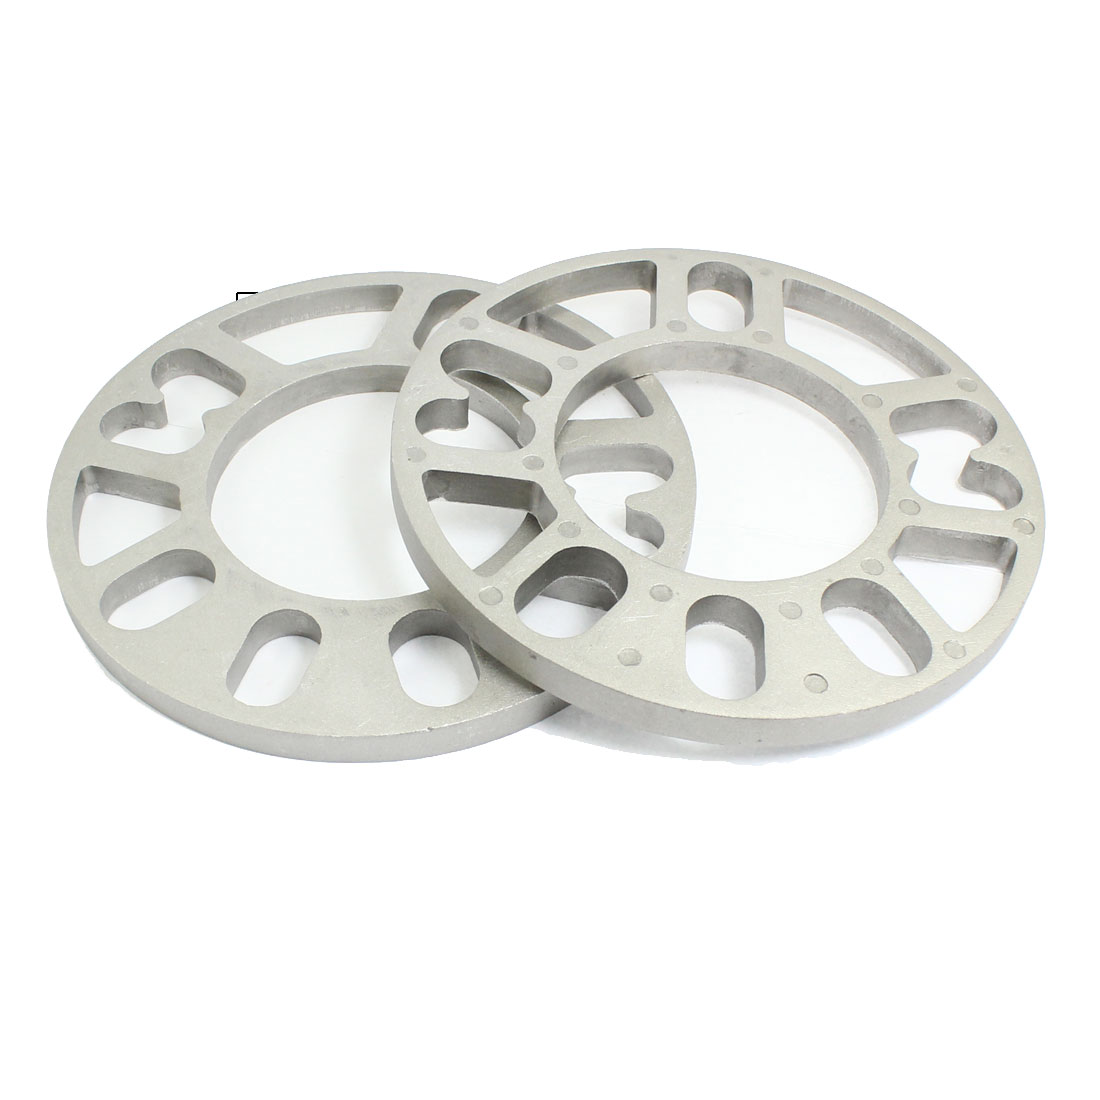 Car-Vehicle-4-and-5-Lug-10mm-Thickness-Wheel-Rims-Spacers-Silver-Tone-2pcs